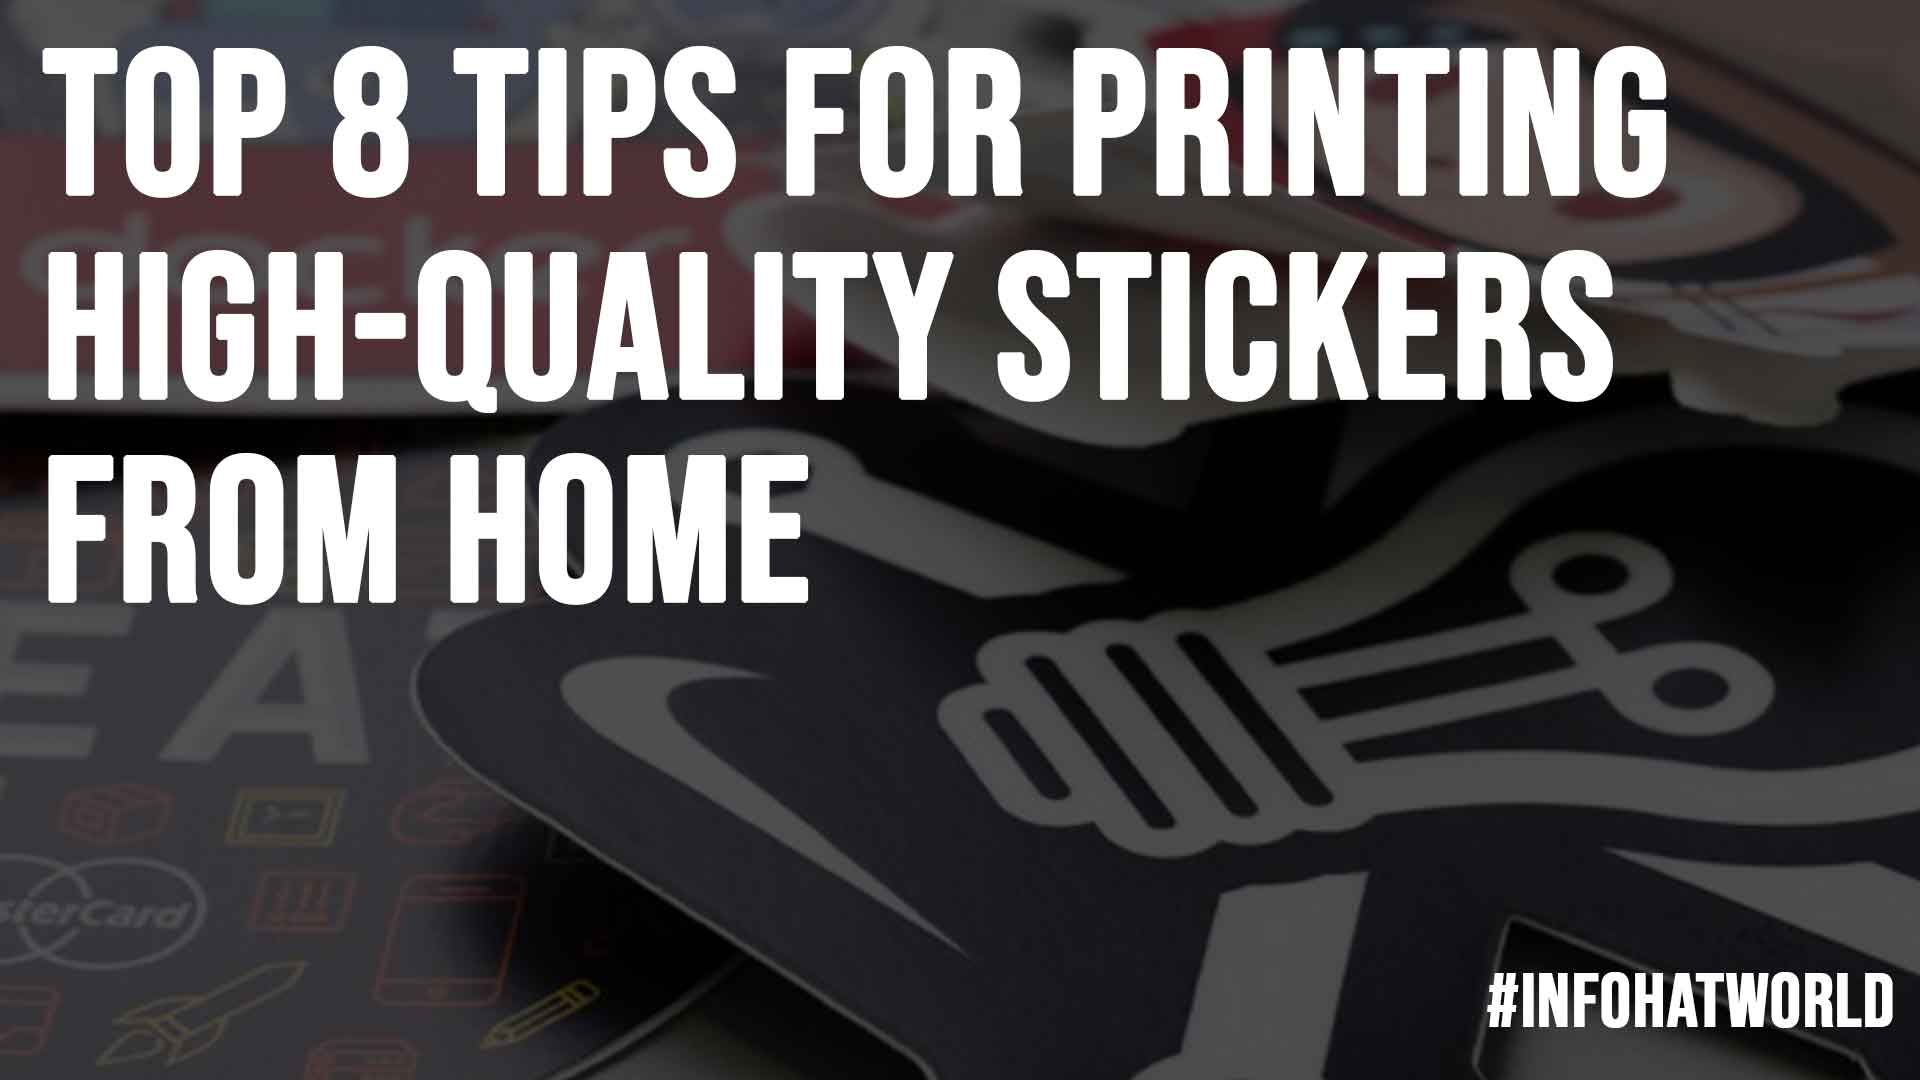 Top 8 Tips for Printing High Quality Stickers from Home